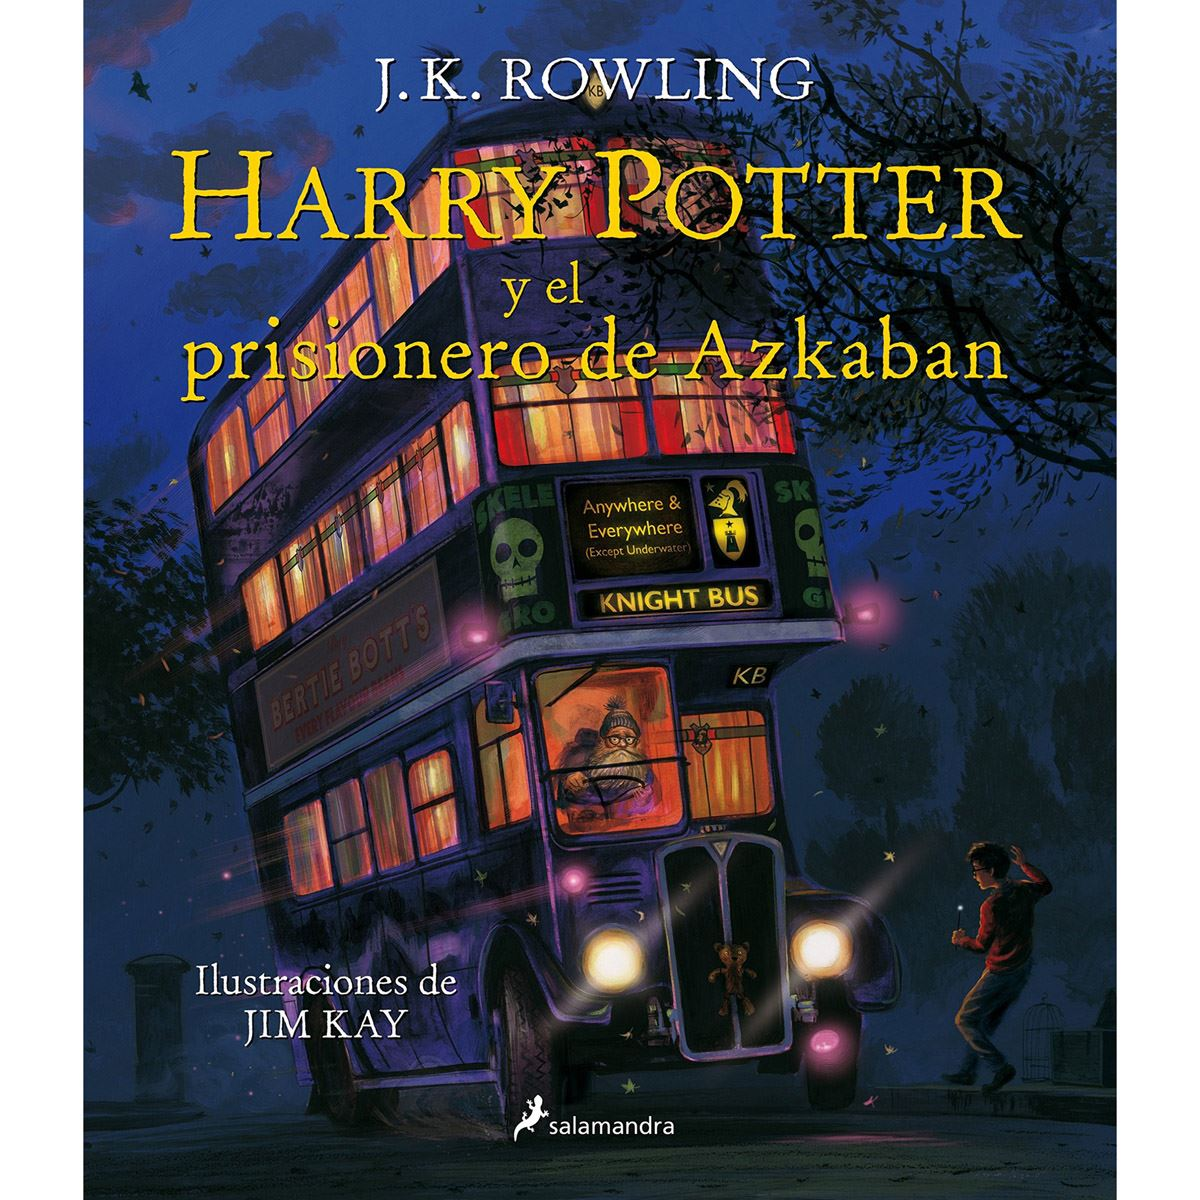 Harry potter 3. harry potter y el prisionero de azkaban (edición ilustrada) Libro - Sanborns